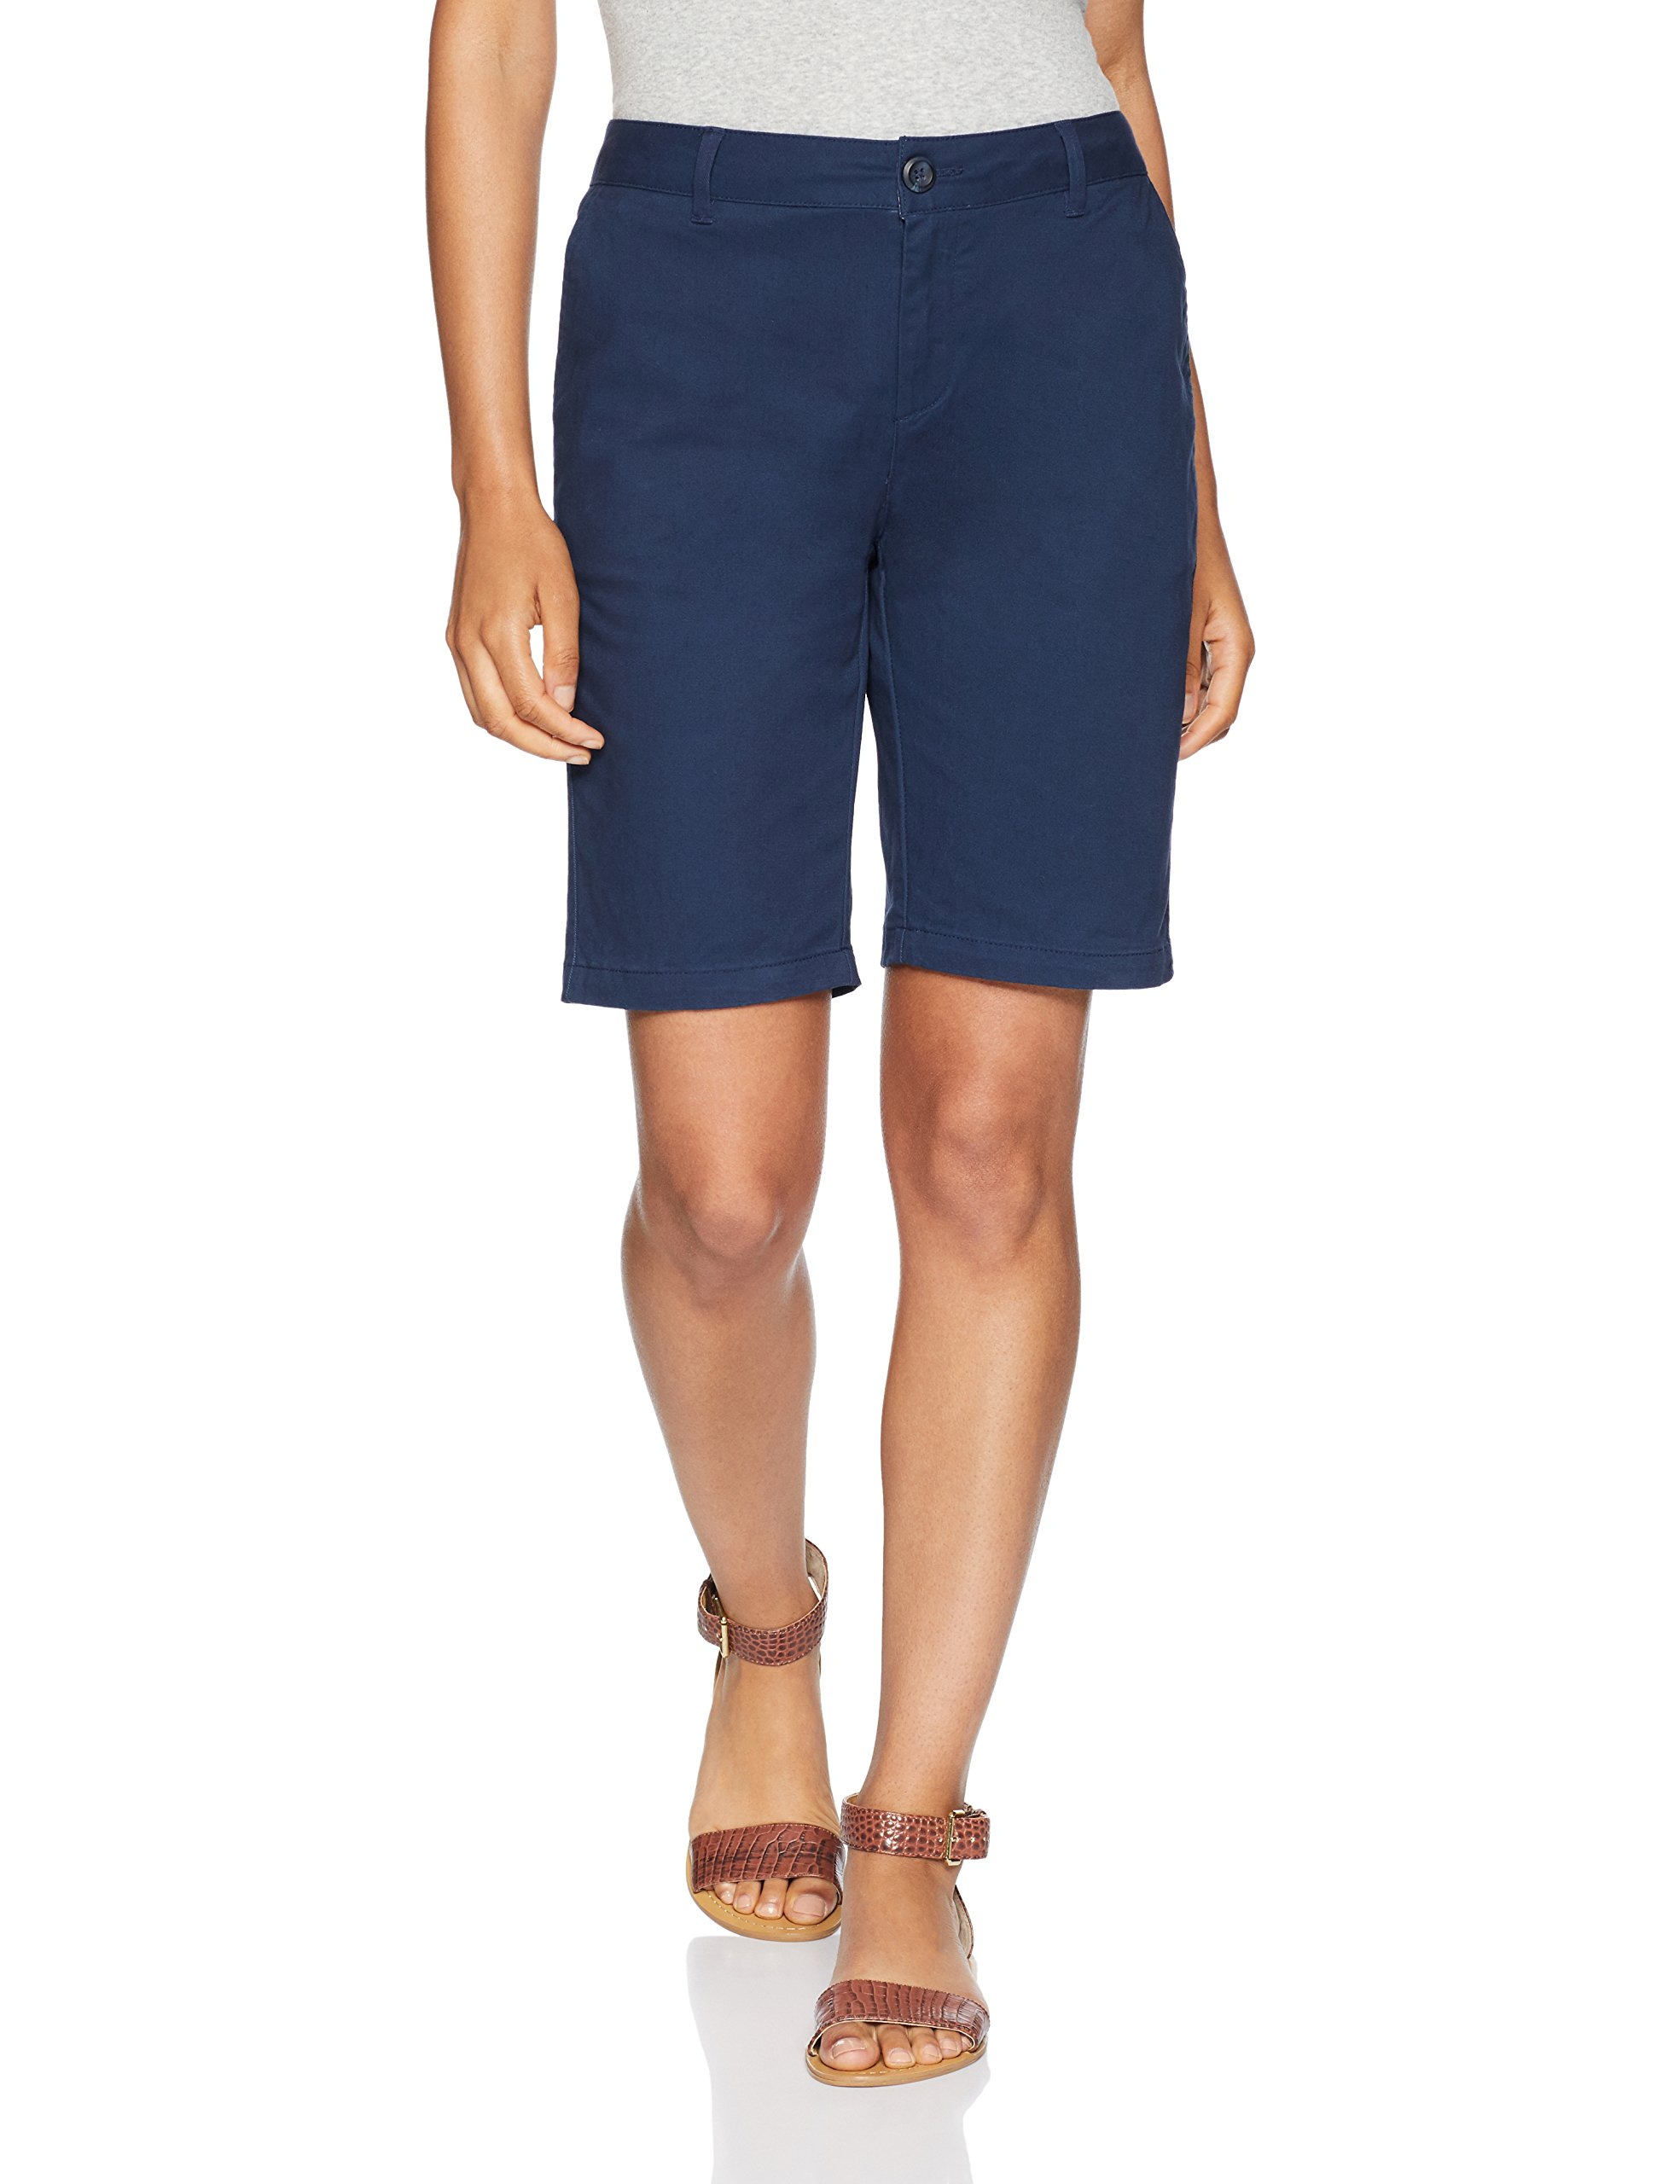 Amazon Essentials Women's 10'' Inseam Solid Bermuda Short Shorts, Navy, 12 by Amazon Essentials